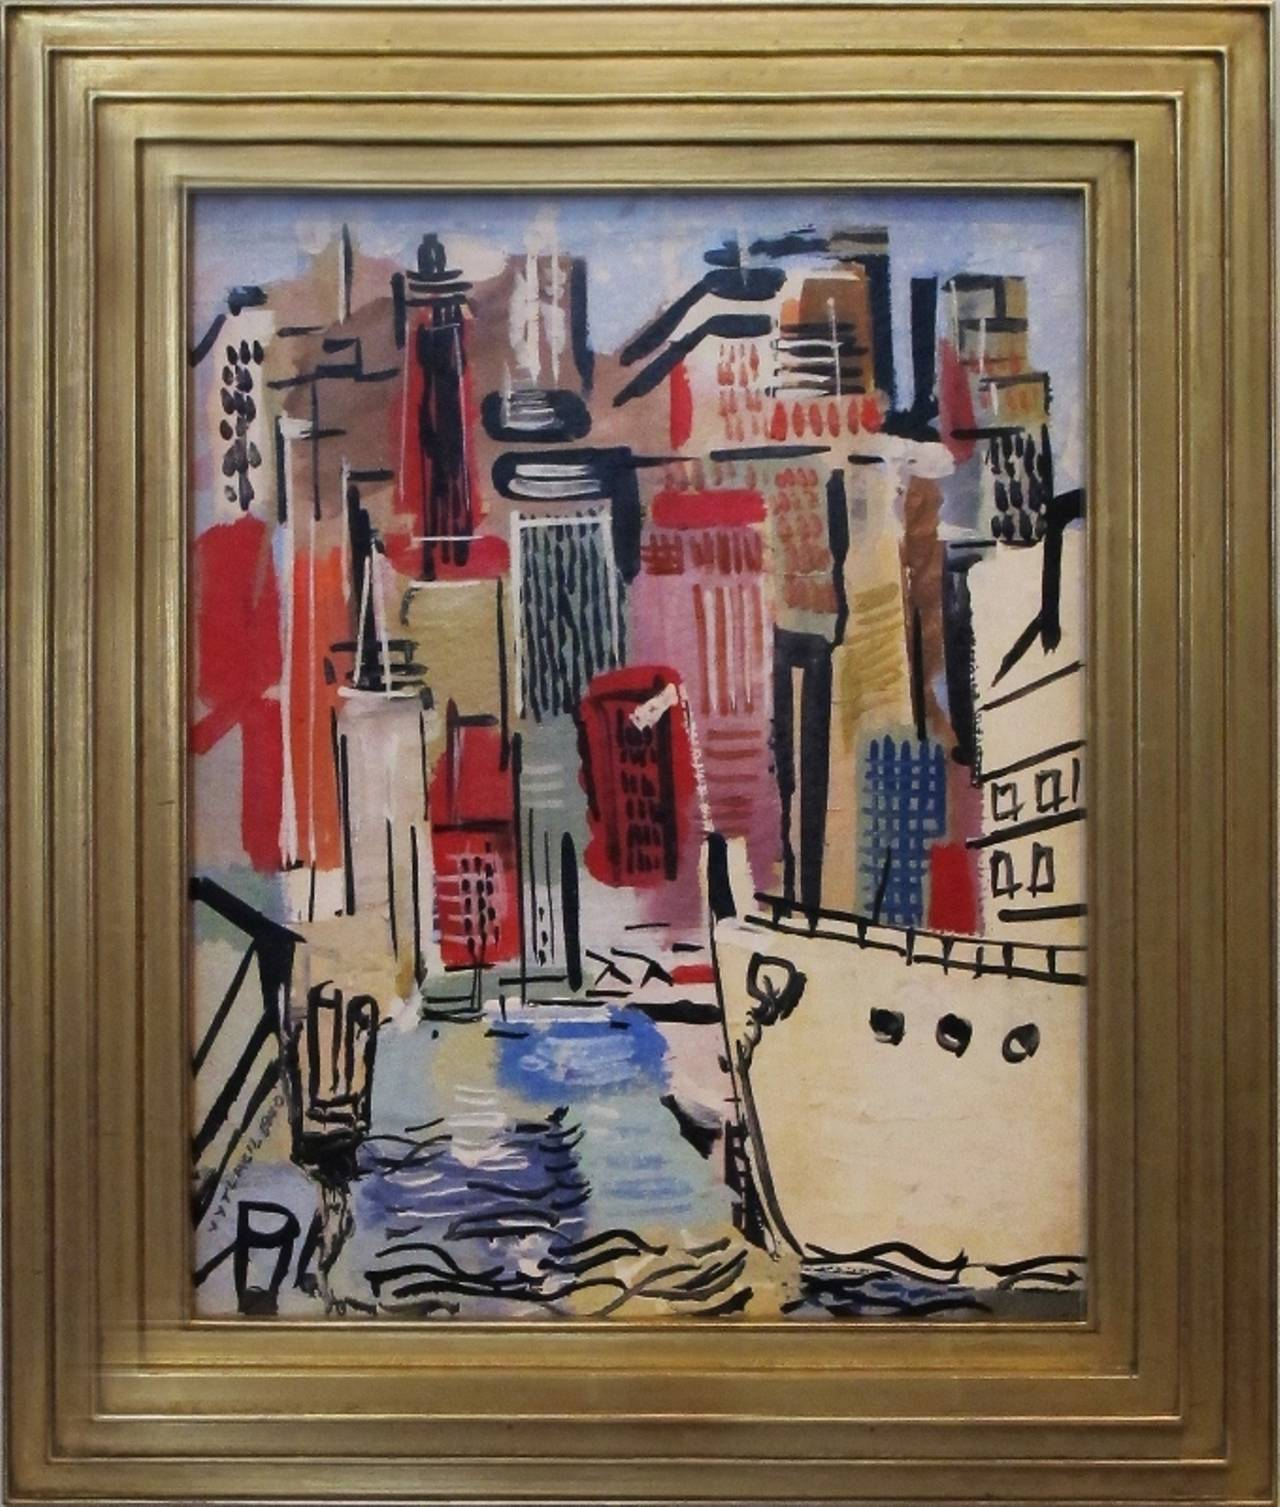 Jim's of Lambertville is proud to offer this artwork.  Signed & dated 1940 lower left.   Vaclav Vytlacil (1892-1984)  He was born to Czechoslovakian parents in 1892 in New York City. Living in Chicago as a youth, he took classes at the School of the